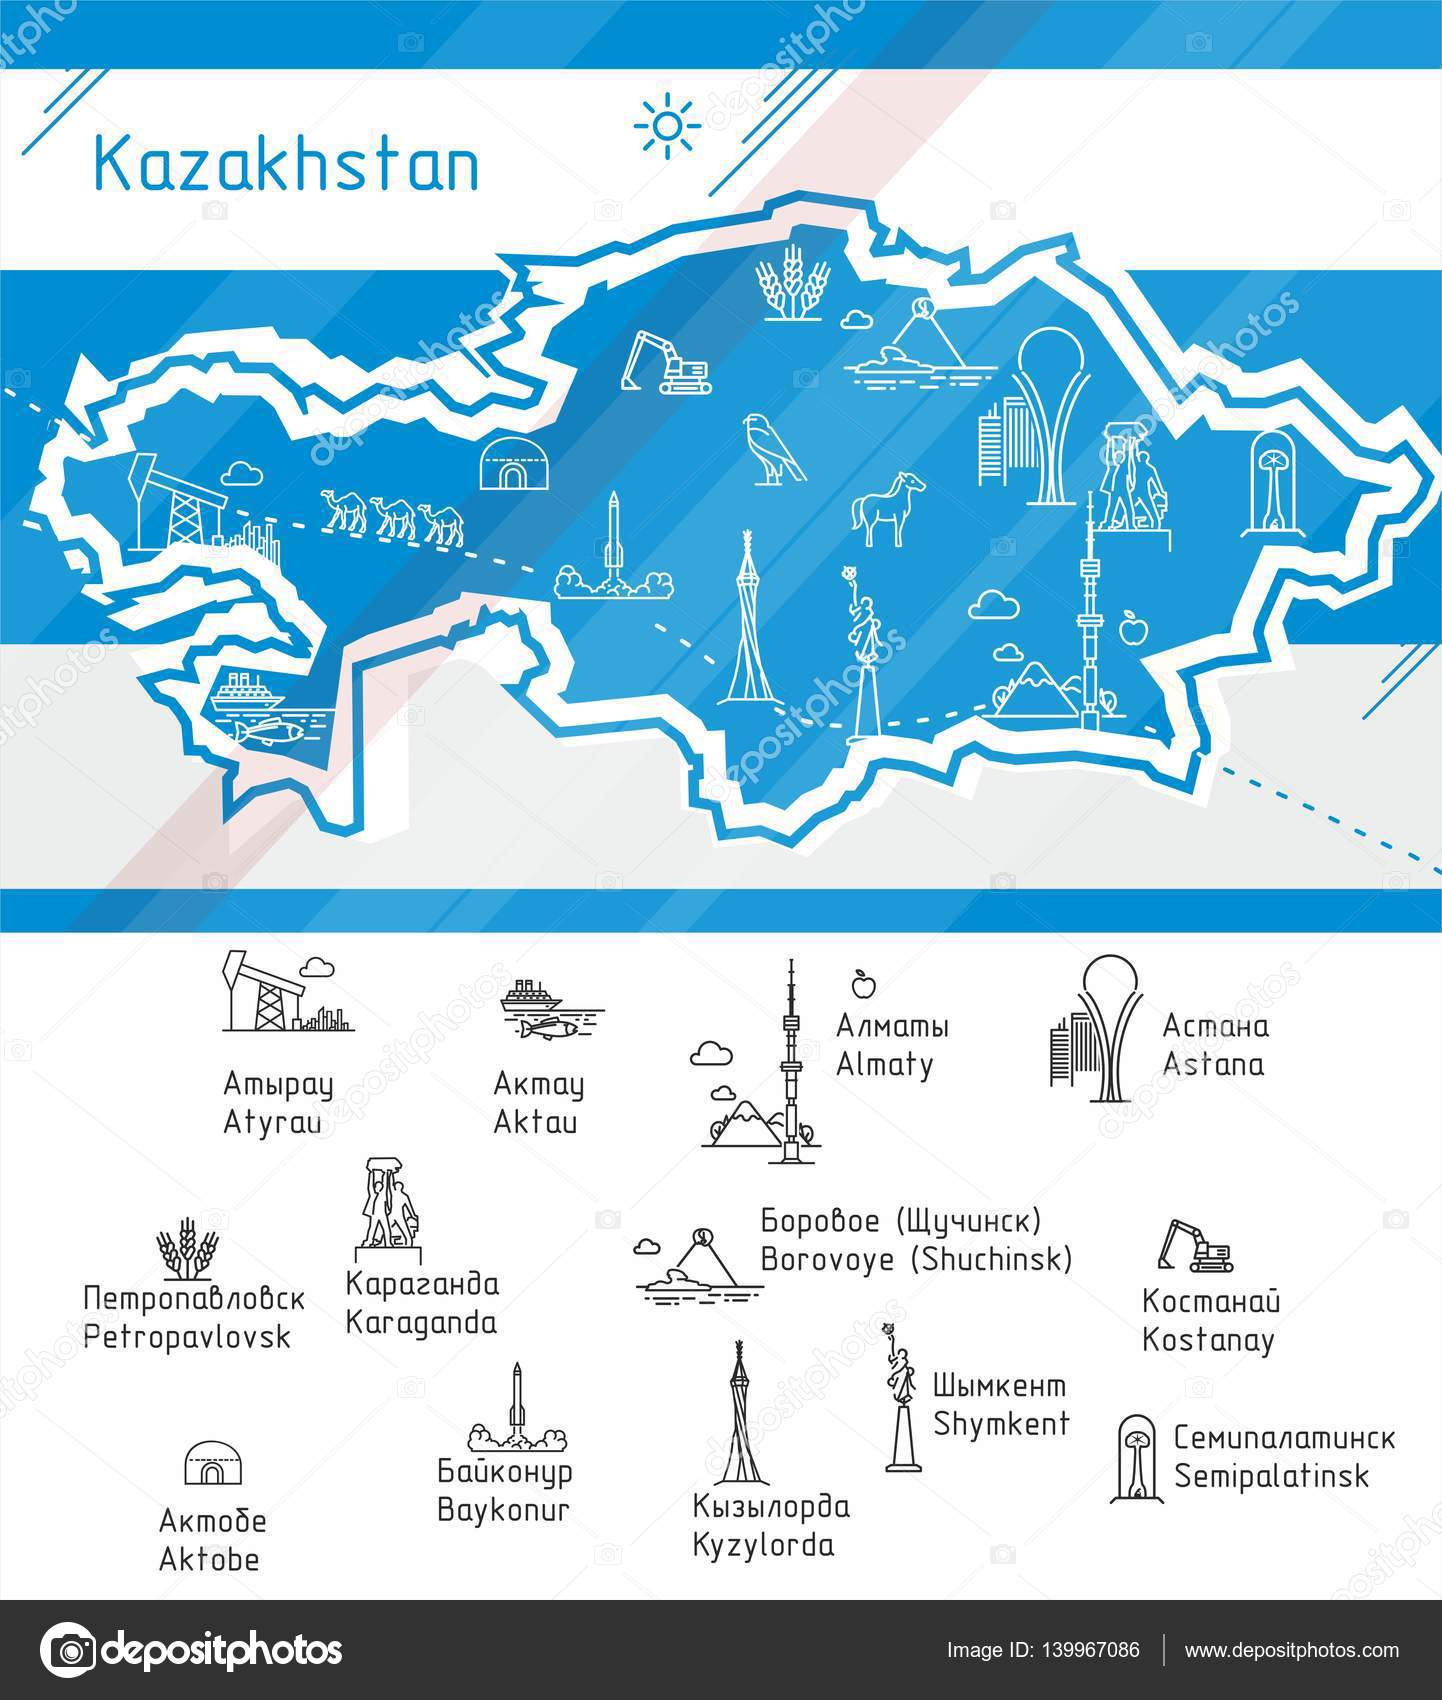 Vector Kazakhstan map with symbols of the major cities Stock